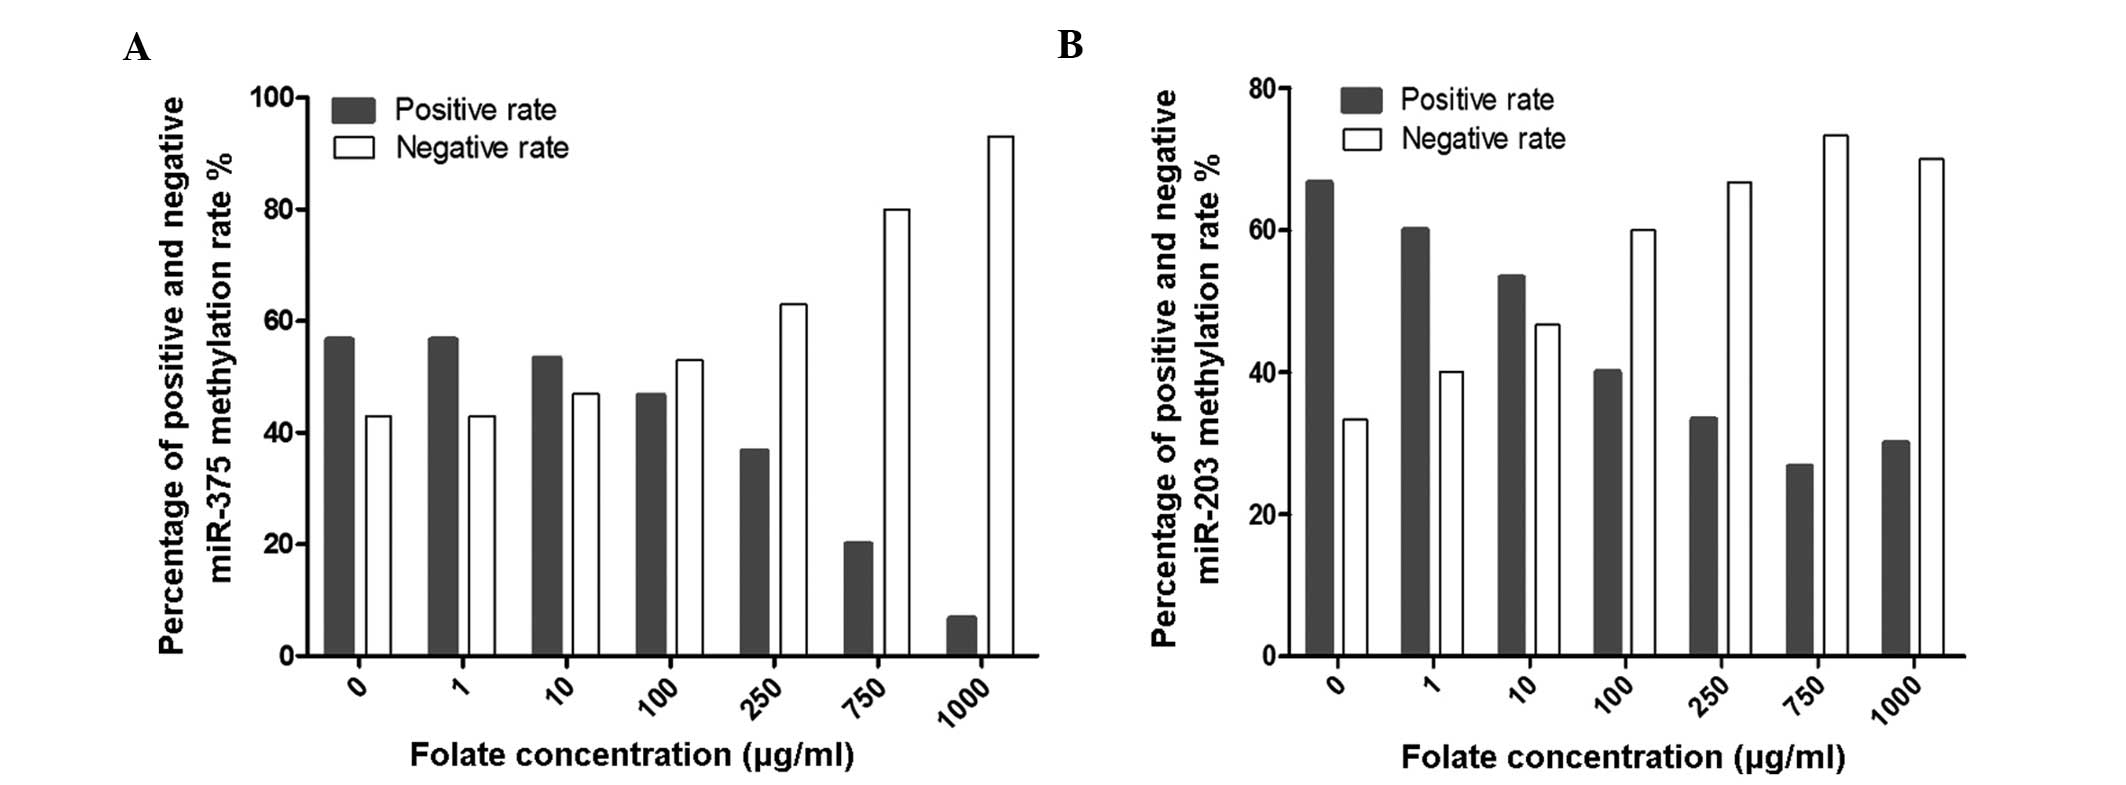 Low Folate Levels Are Associated With Methylation Mediated